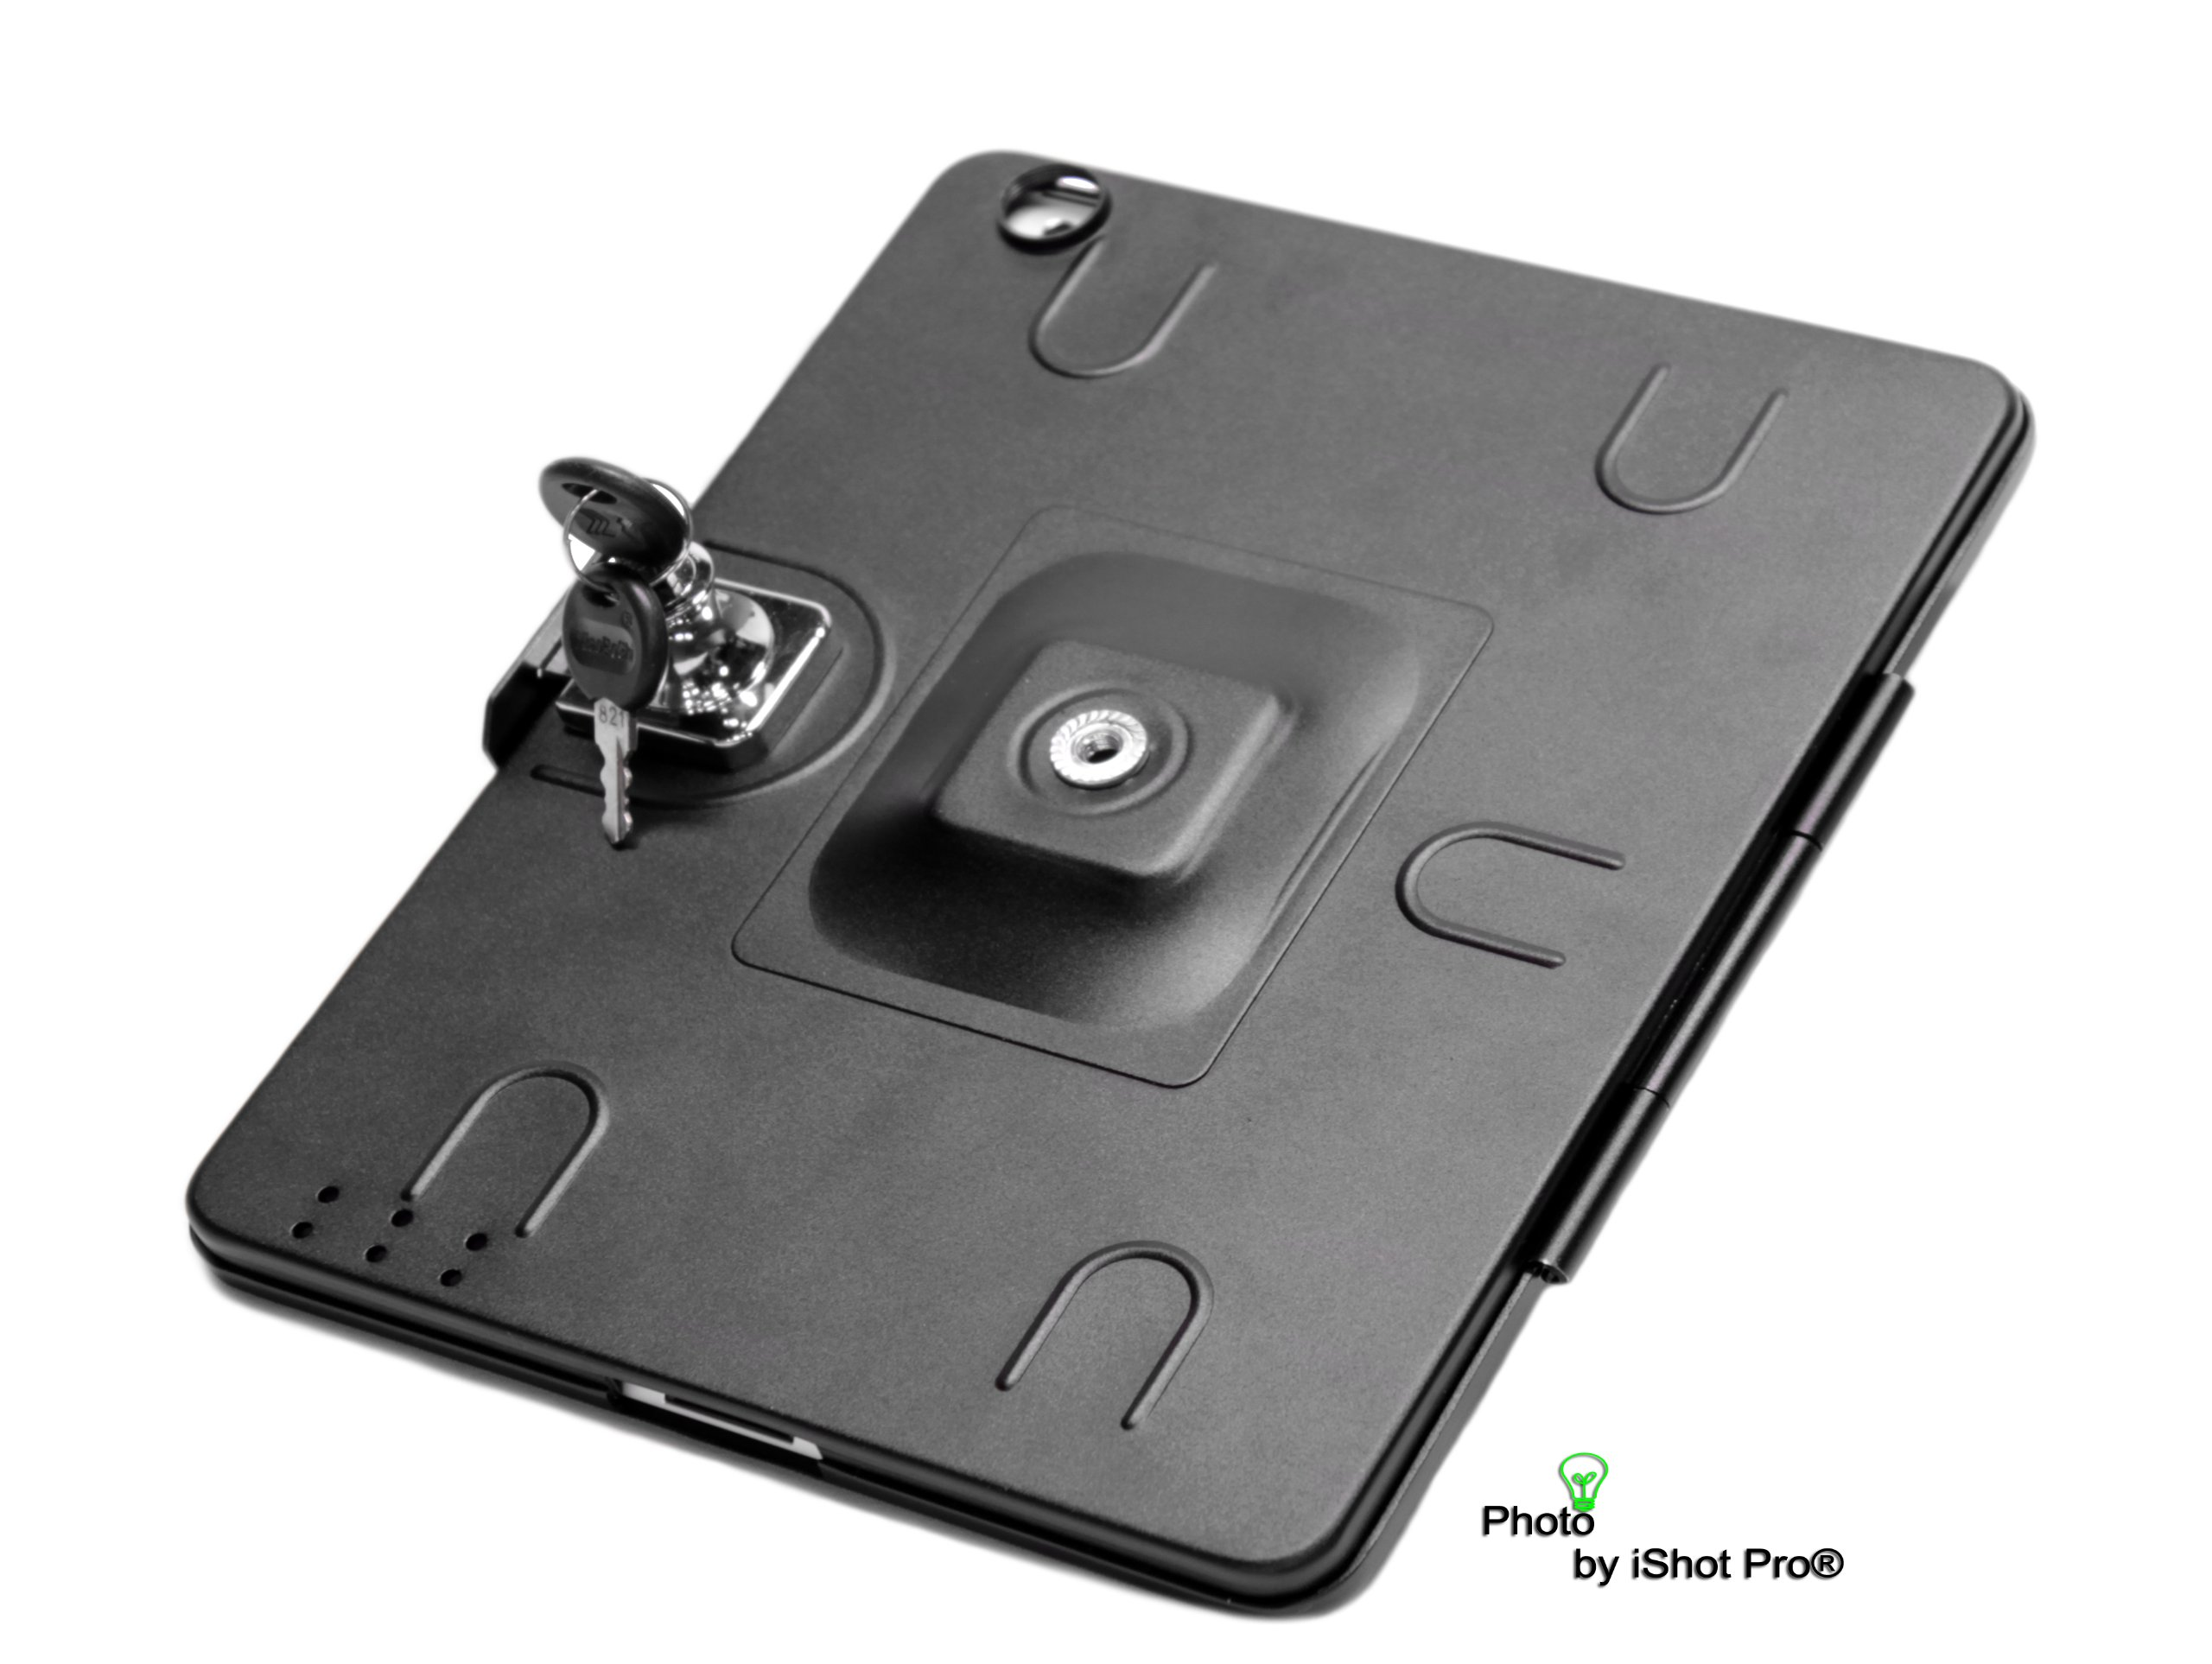 iShot G9 Pro iPad 2 3 4 Gen. Tripod Mount Adapter Holder Attachment - Easily and Safely Mount your iPad 234 to Any 1/4 inch Thread Standard Camera Tripod You Already Use - All Metal Custom Fit Frame